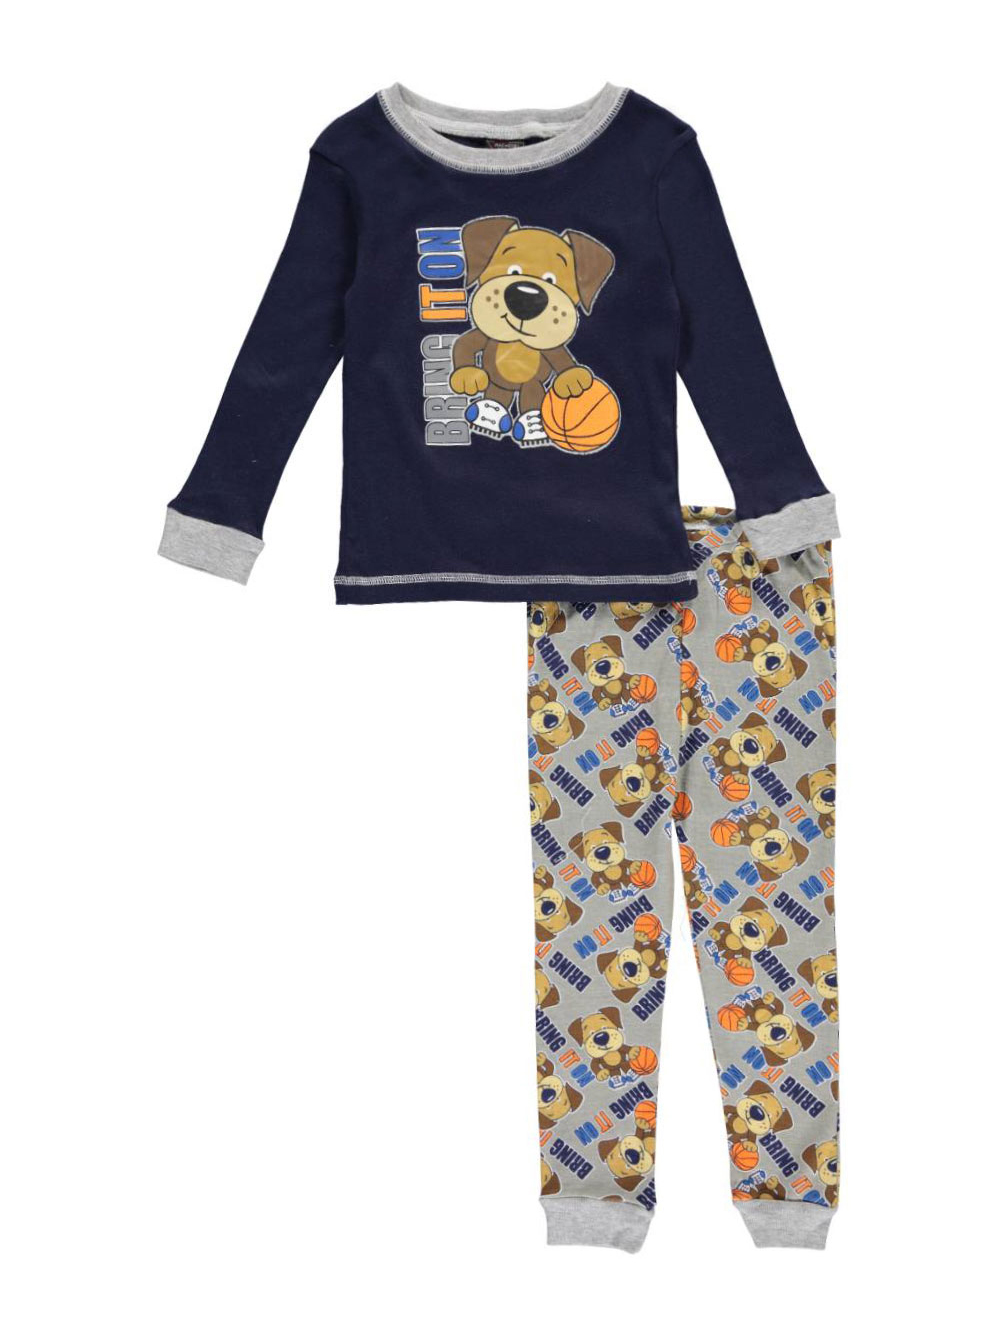 Image of Mac Henry Little Boys Toddler Bring It On 2Piece Pajamas Sizes 2T  4T  navymulti 4t